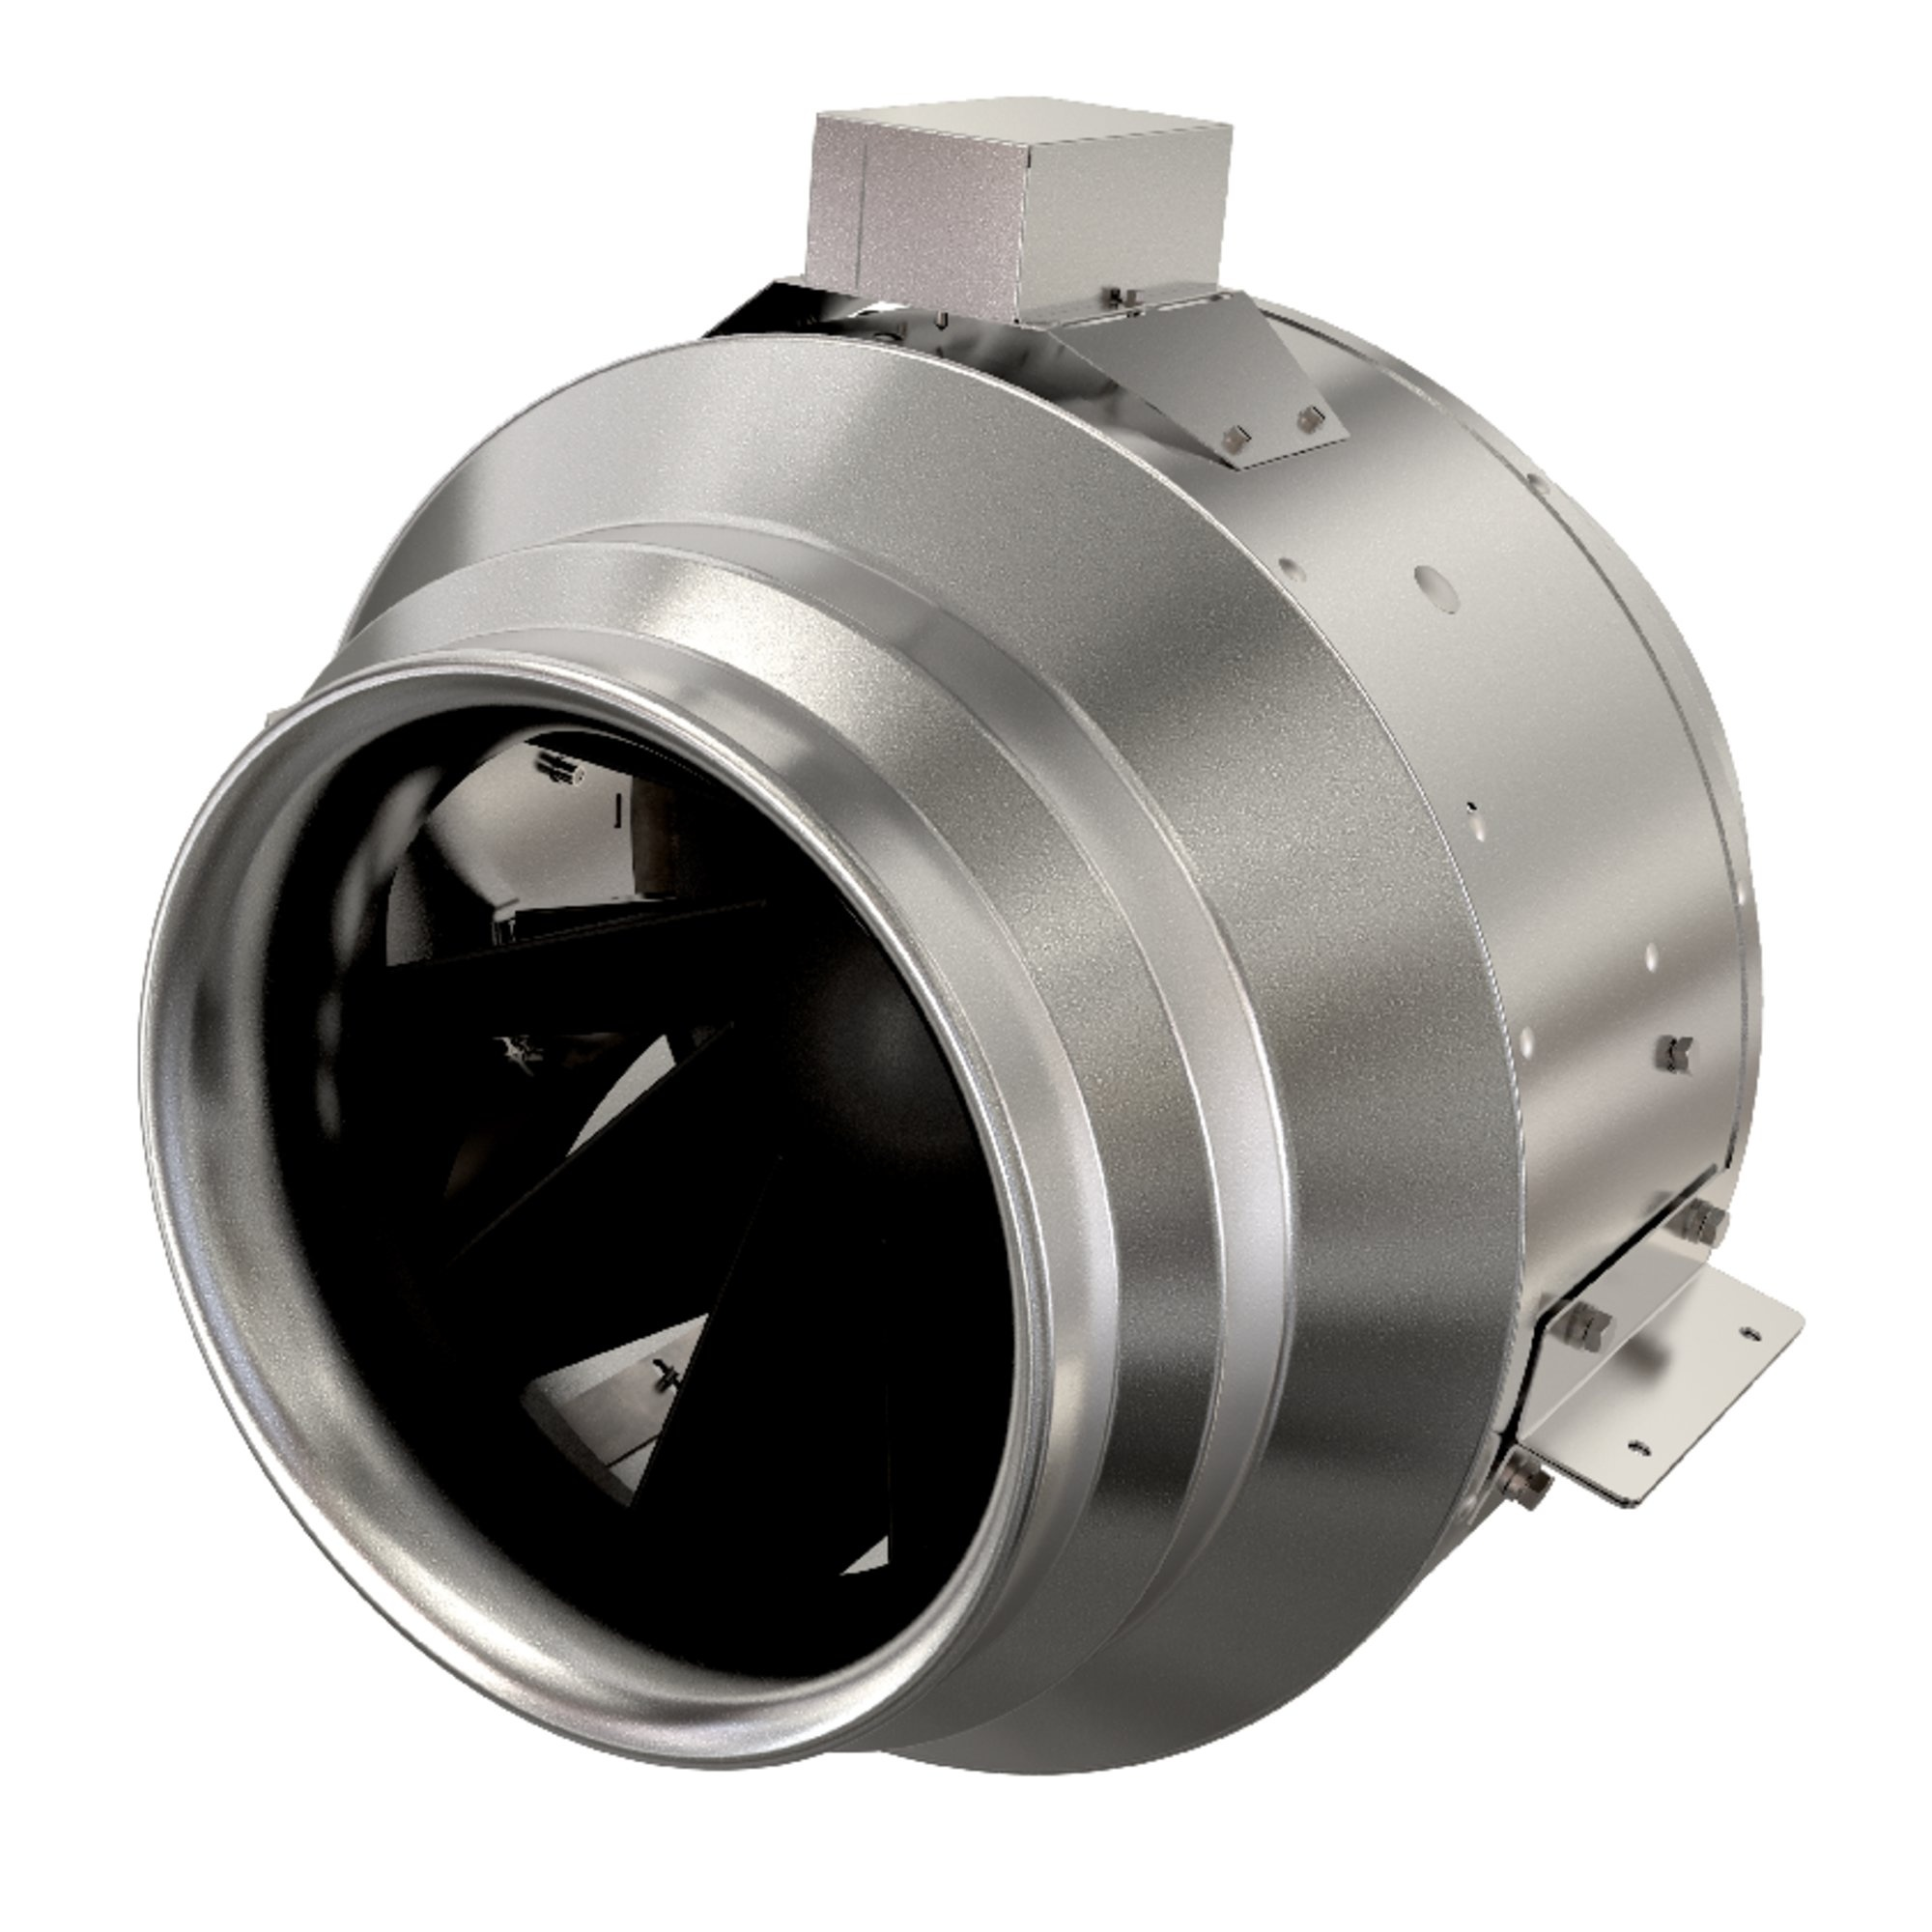 FKD 14 Mixed Flow Fan - Circular duct fans - Fantech